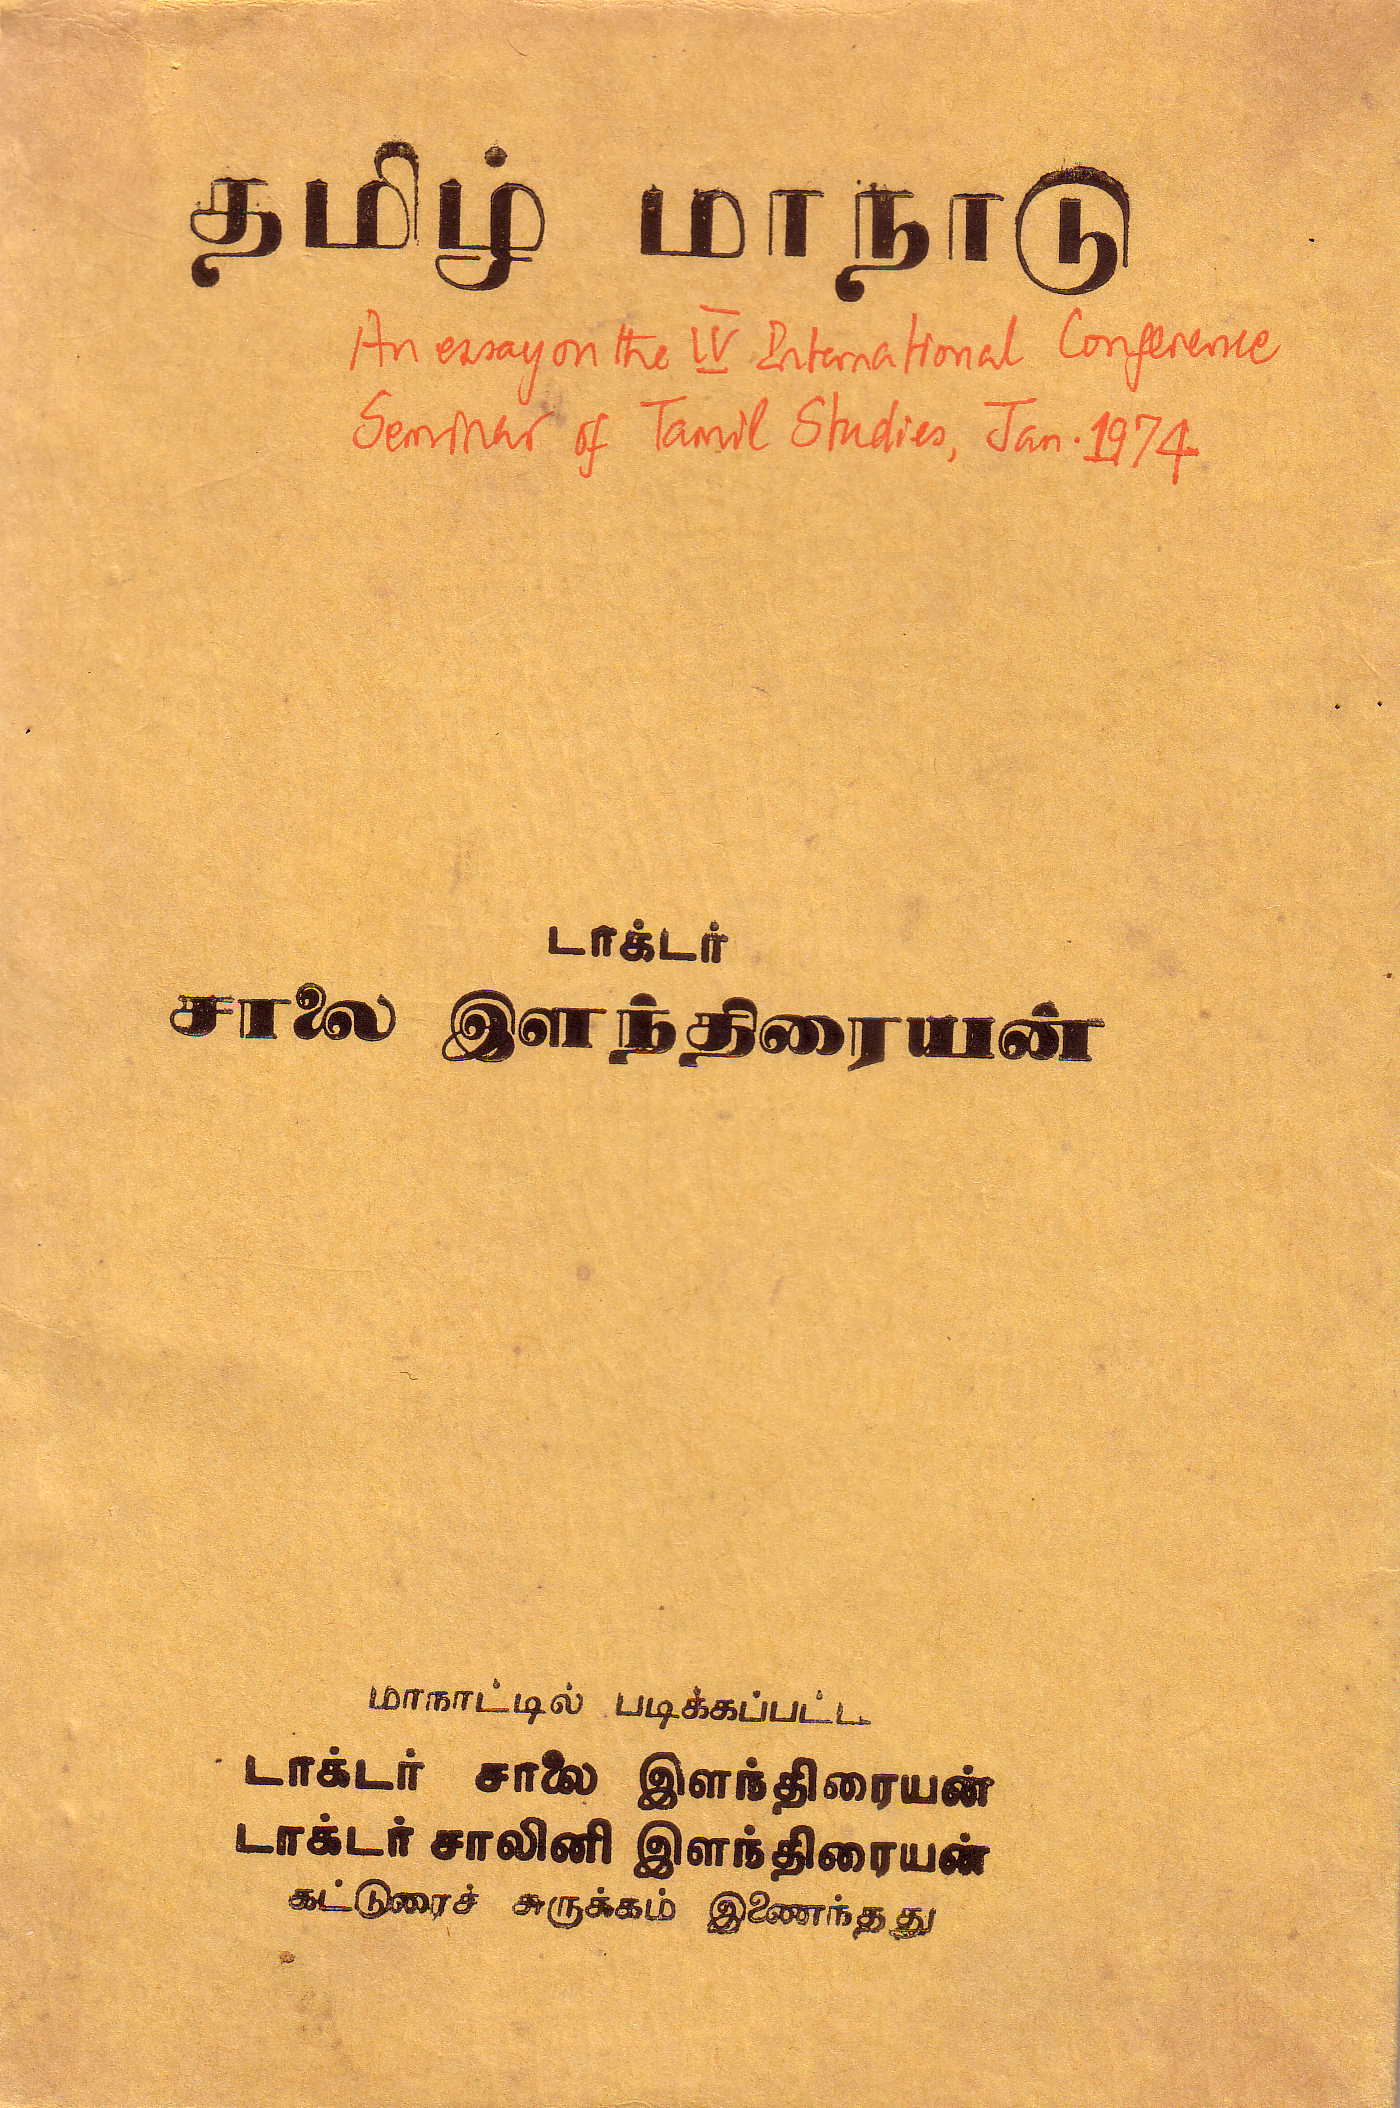 jaffna international tamil research conference of 1974 ilankai tamil conference 1974 booklet cover